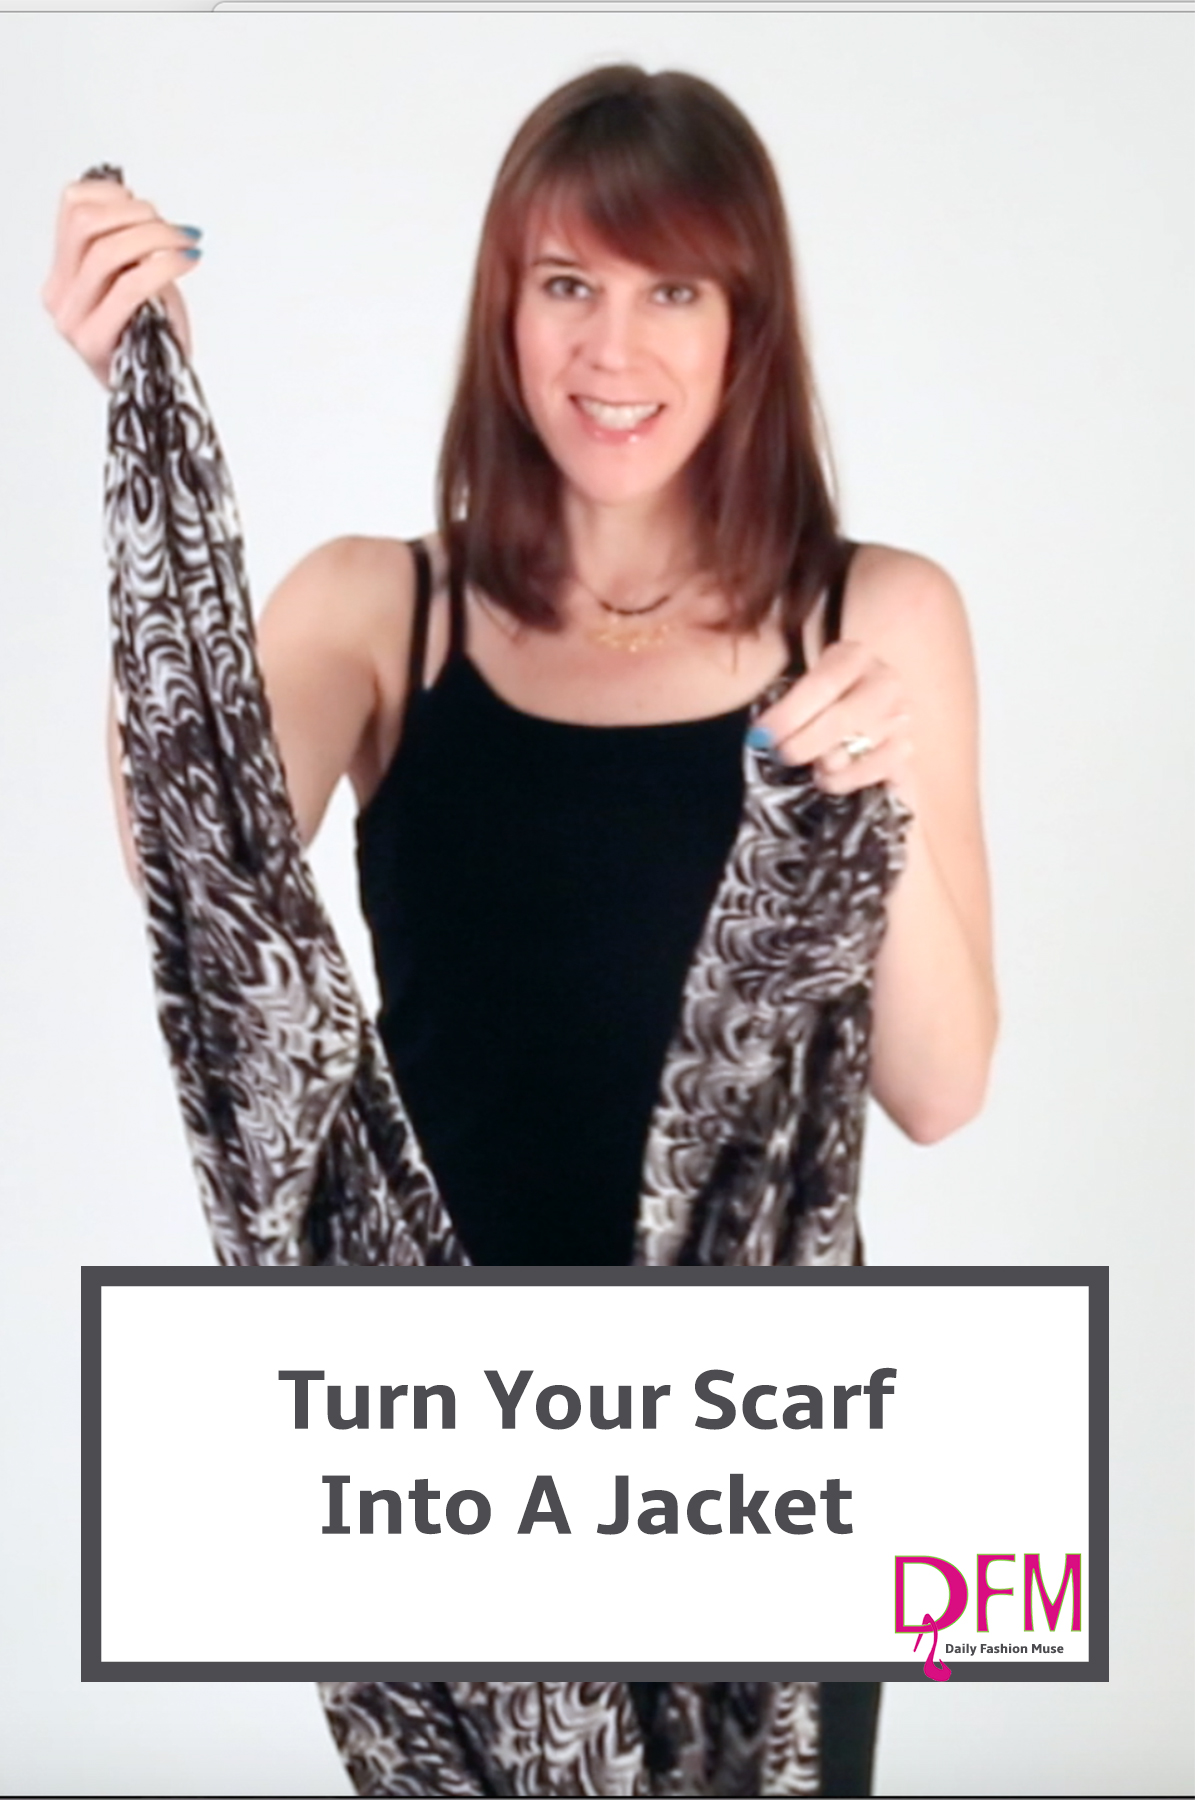 Super easy video tutorial on turning your oblong scarf into a jacket. Click through to watch the video.